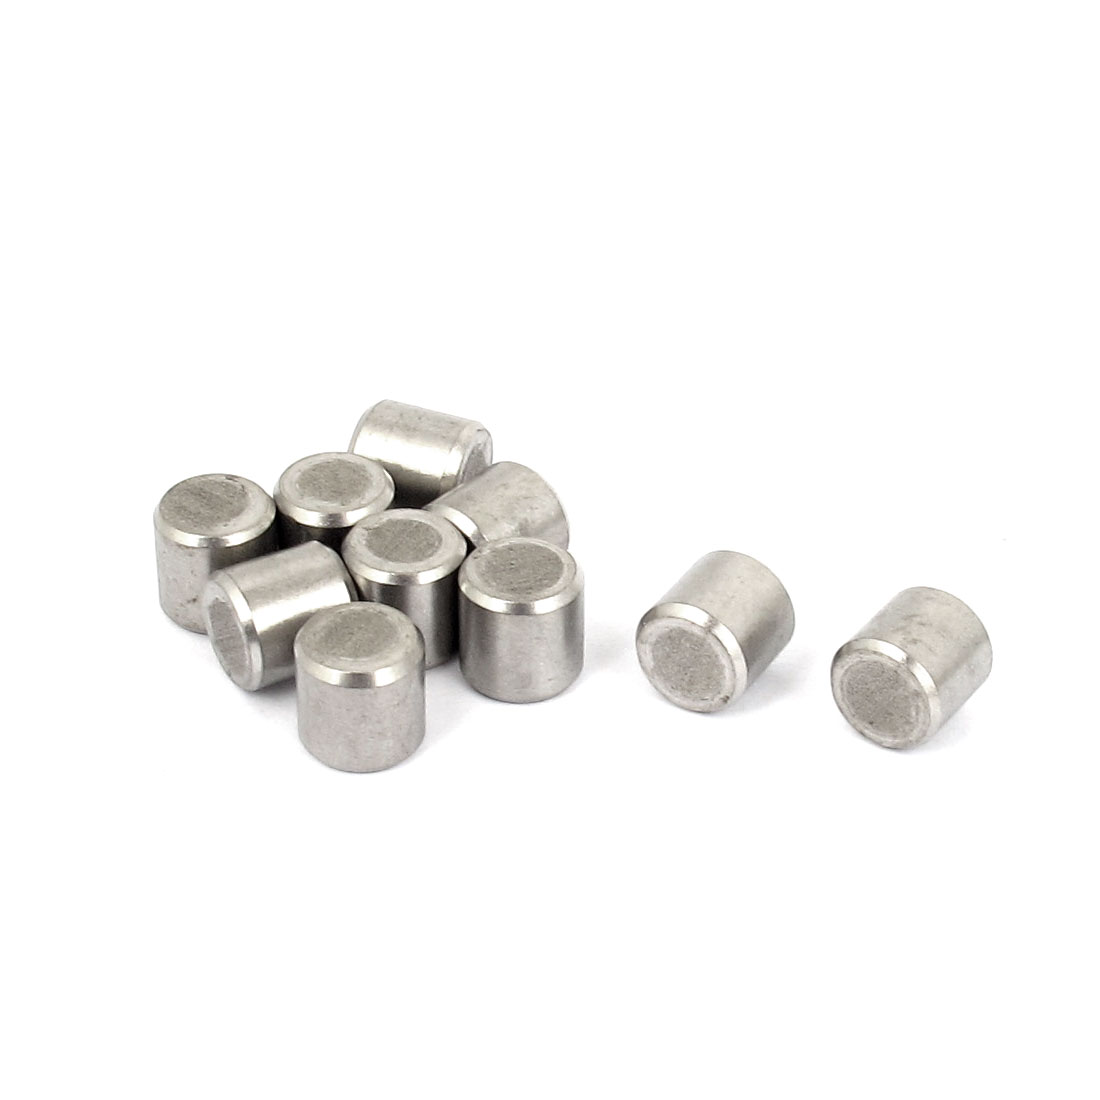 8mm x 8mm 304 Stainless Steel Dowel Pins Fasten Elements Silver Tone 10pcs